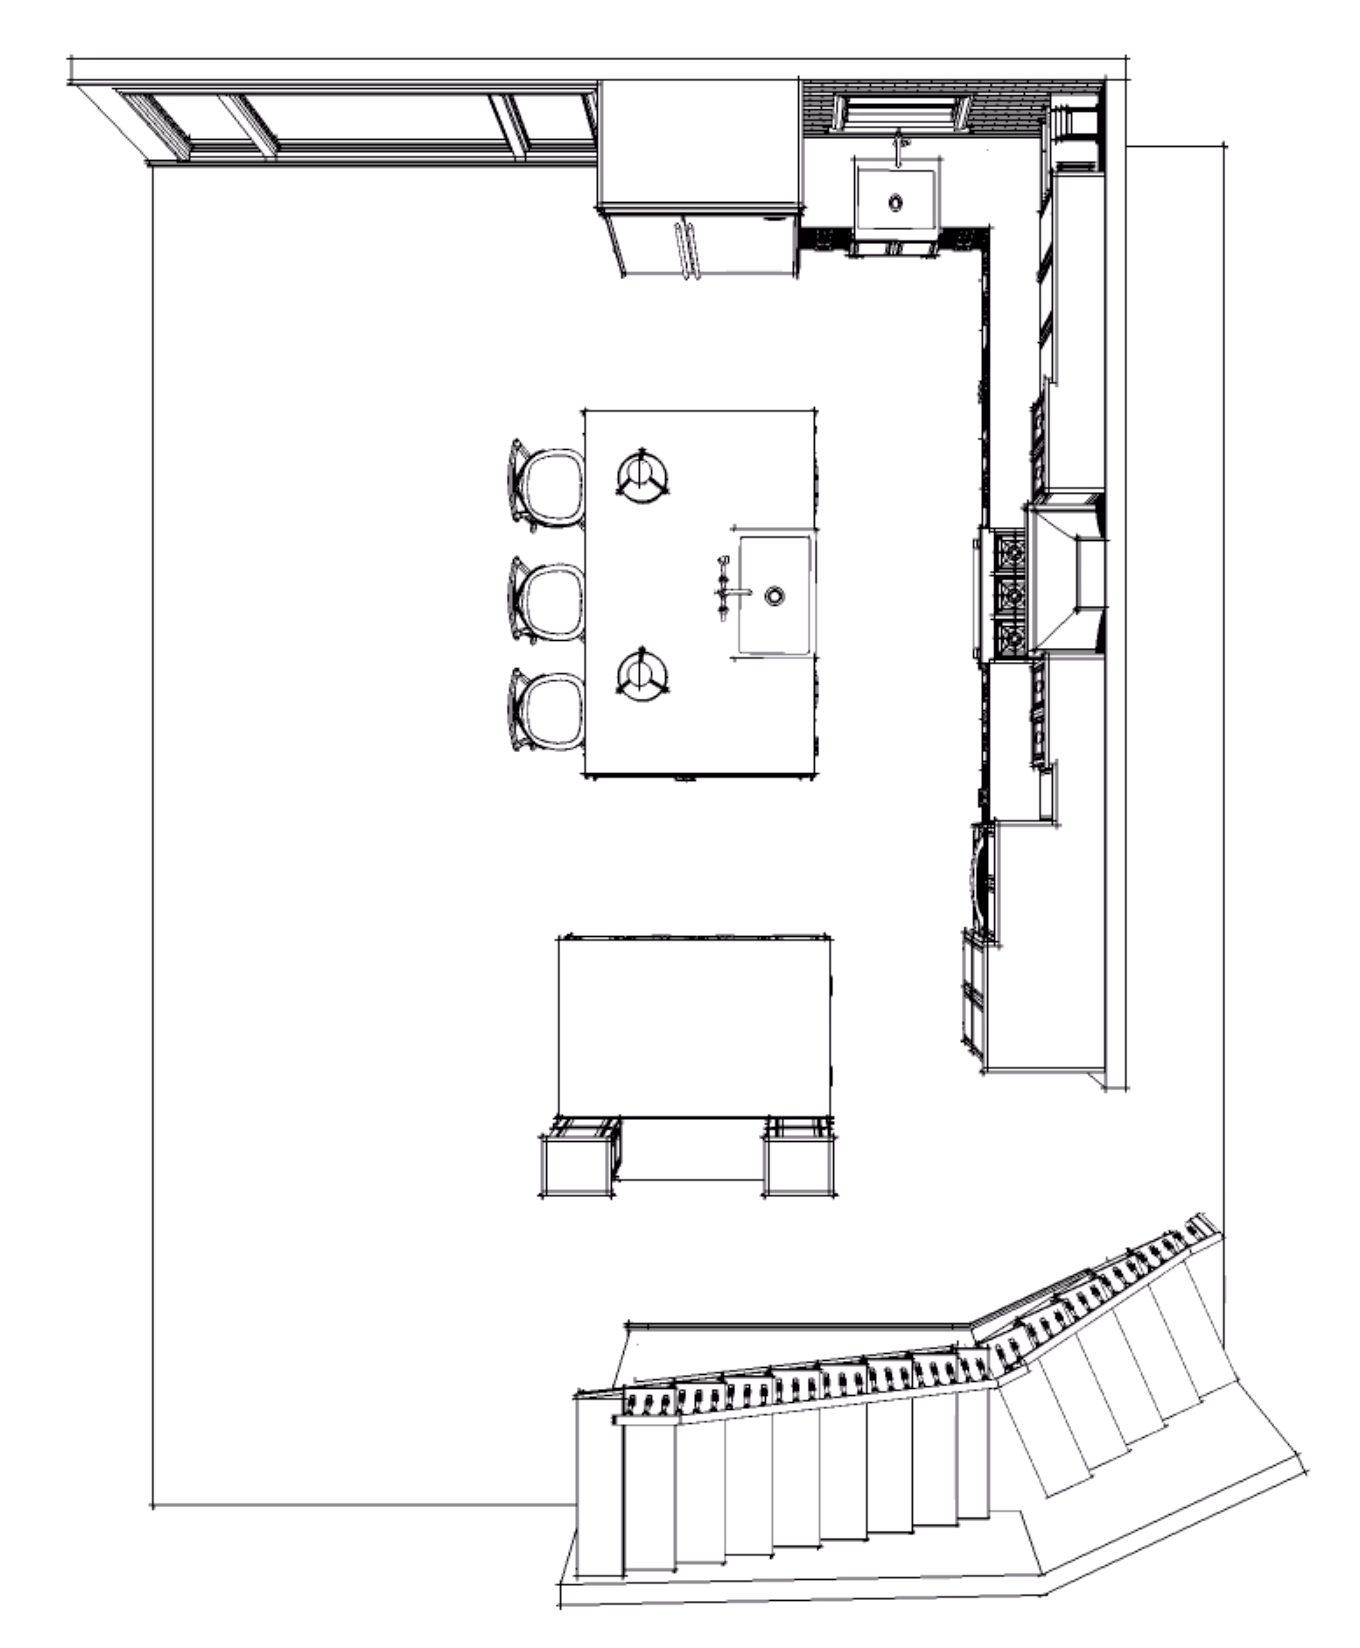 PROPOSED FLOOR PLAN TO HIDE THE STRUCTURAL POST